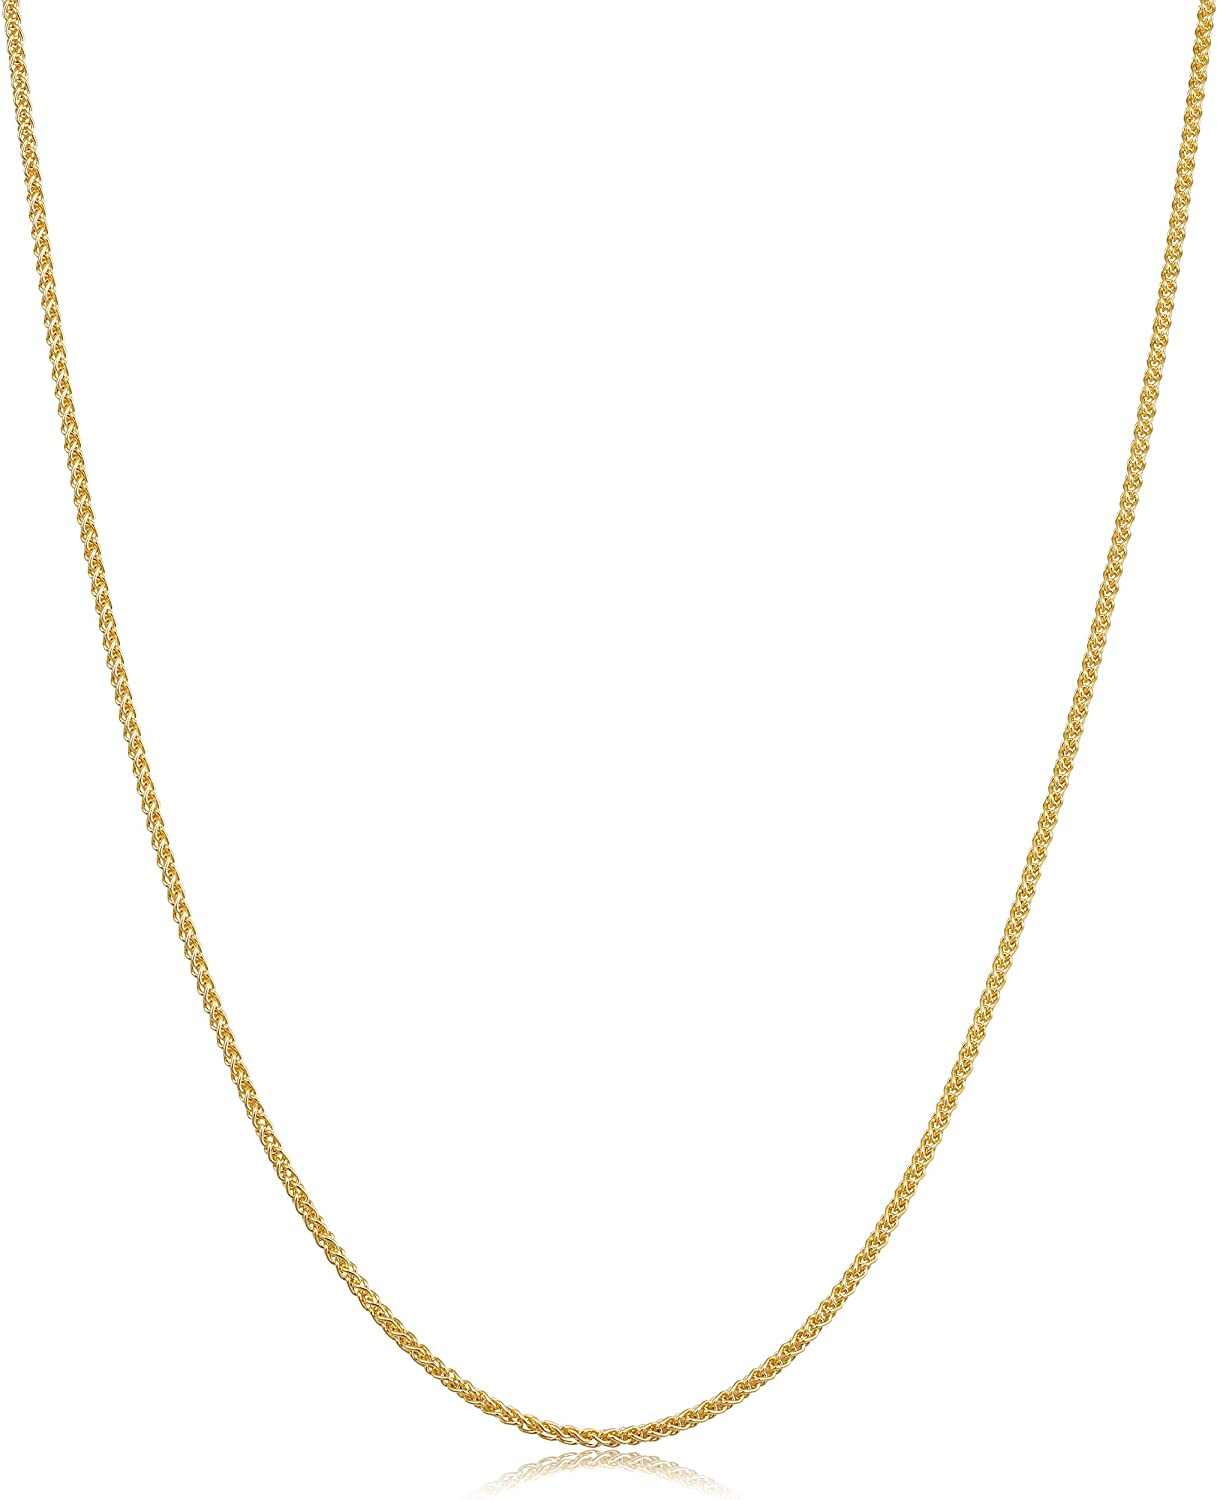 Kooljewelry Solid 14k Yellow Gold 1.2 mm Round Wheat Chain Necklace (16, 18, 20, 24, 30 or 36 inch)